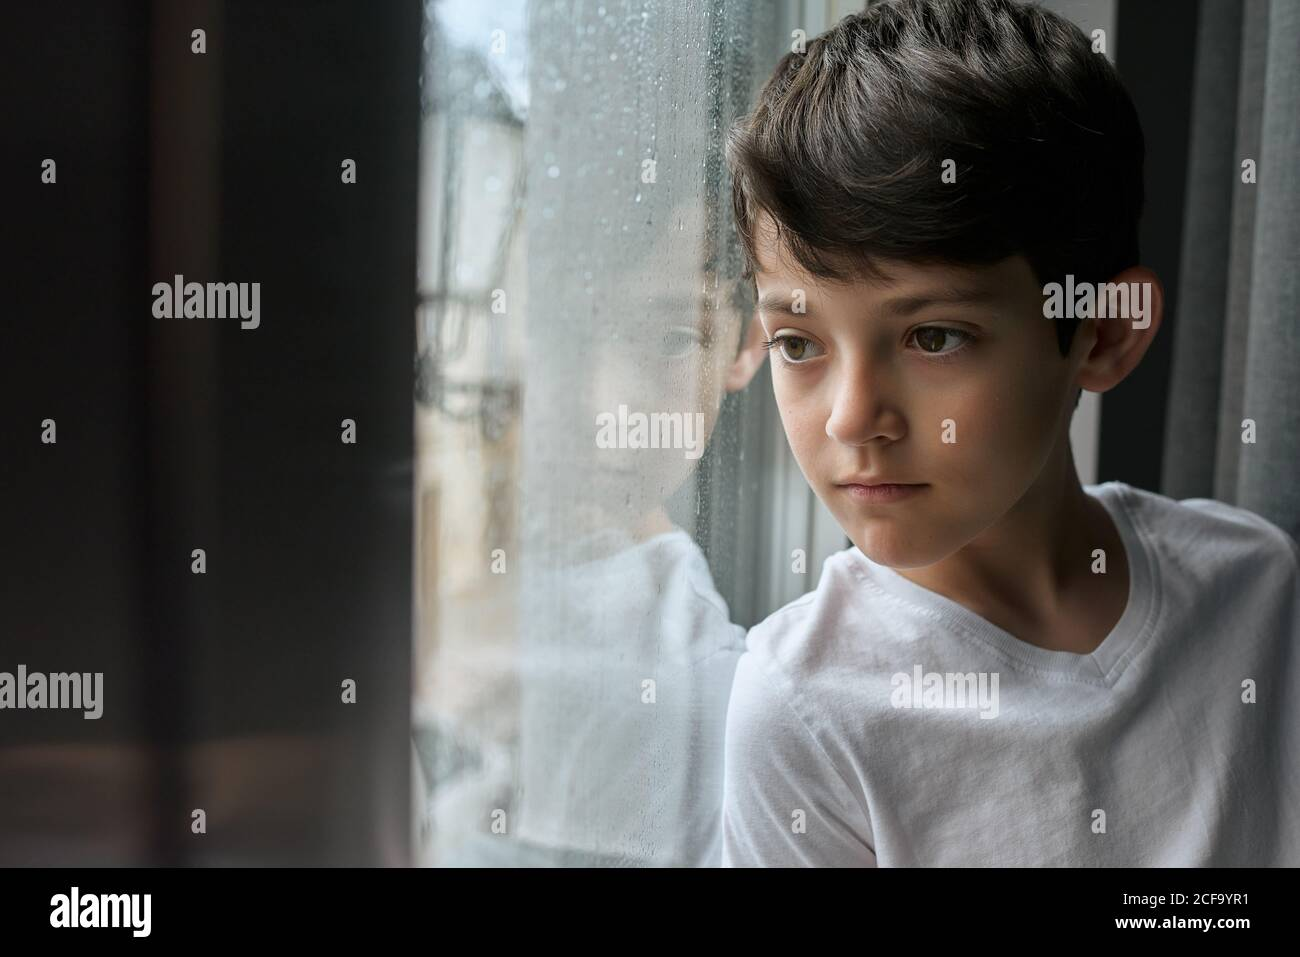 Bored child in casual clothing standing in living room and leaning on window while observing rain on street Stock Photo